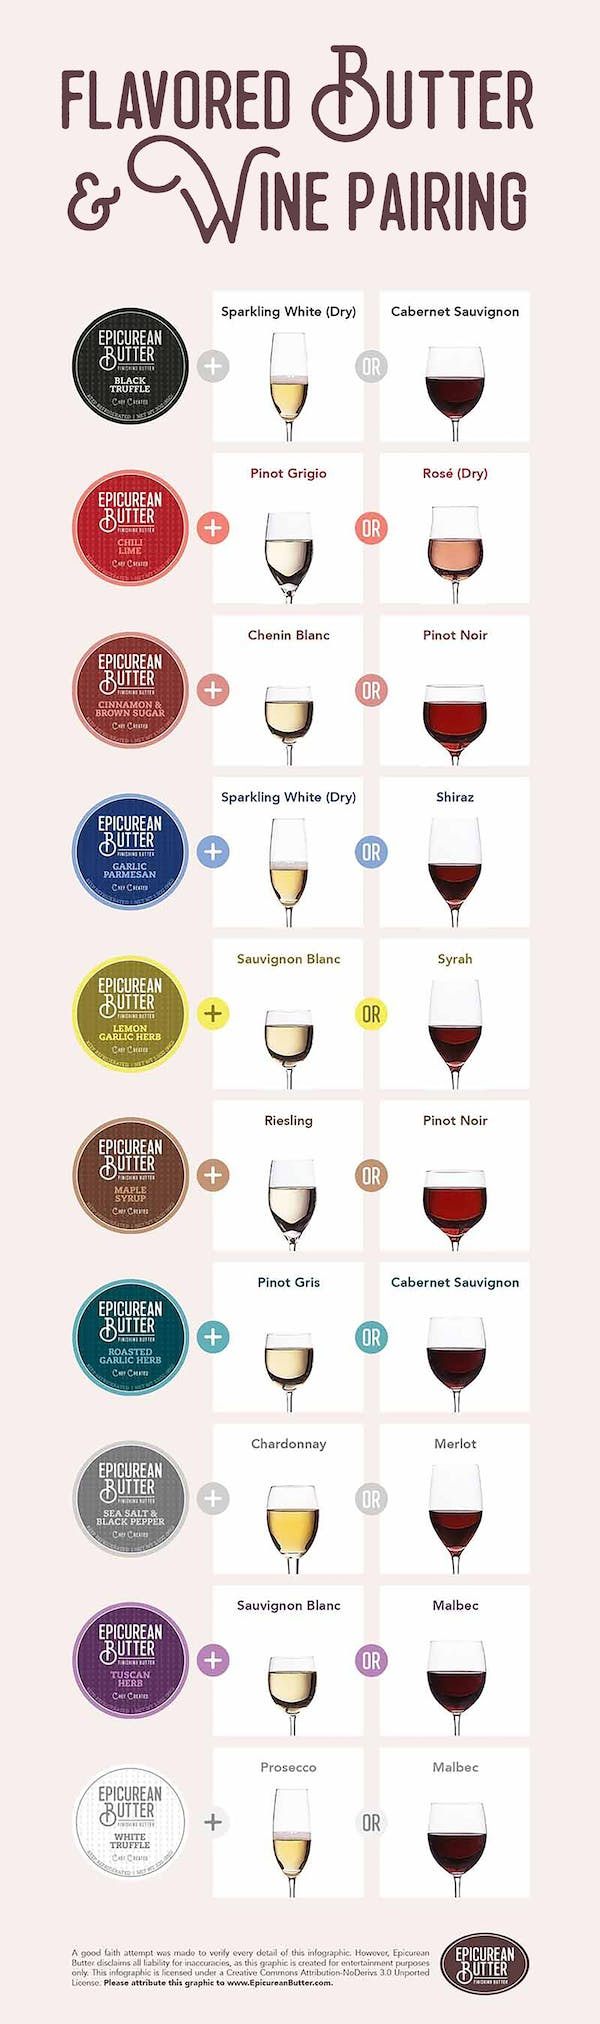 Epicurean Butter wine pairing infographic.